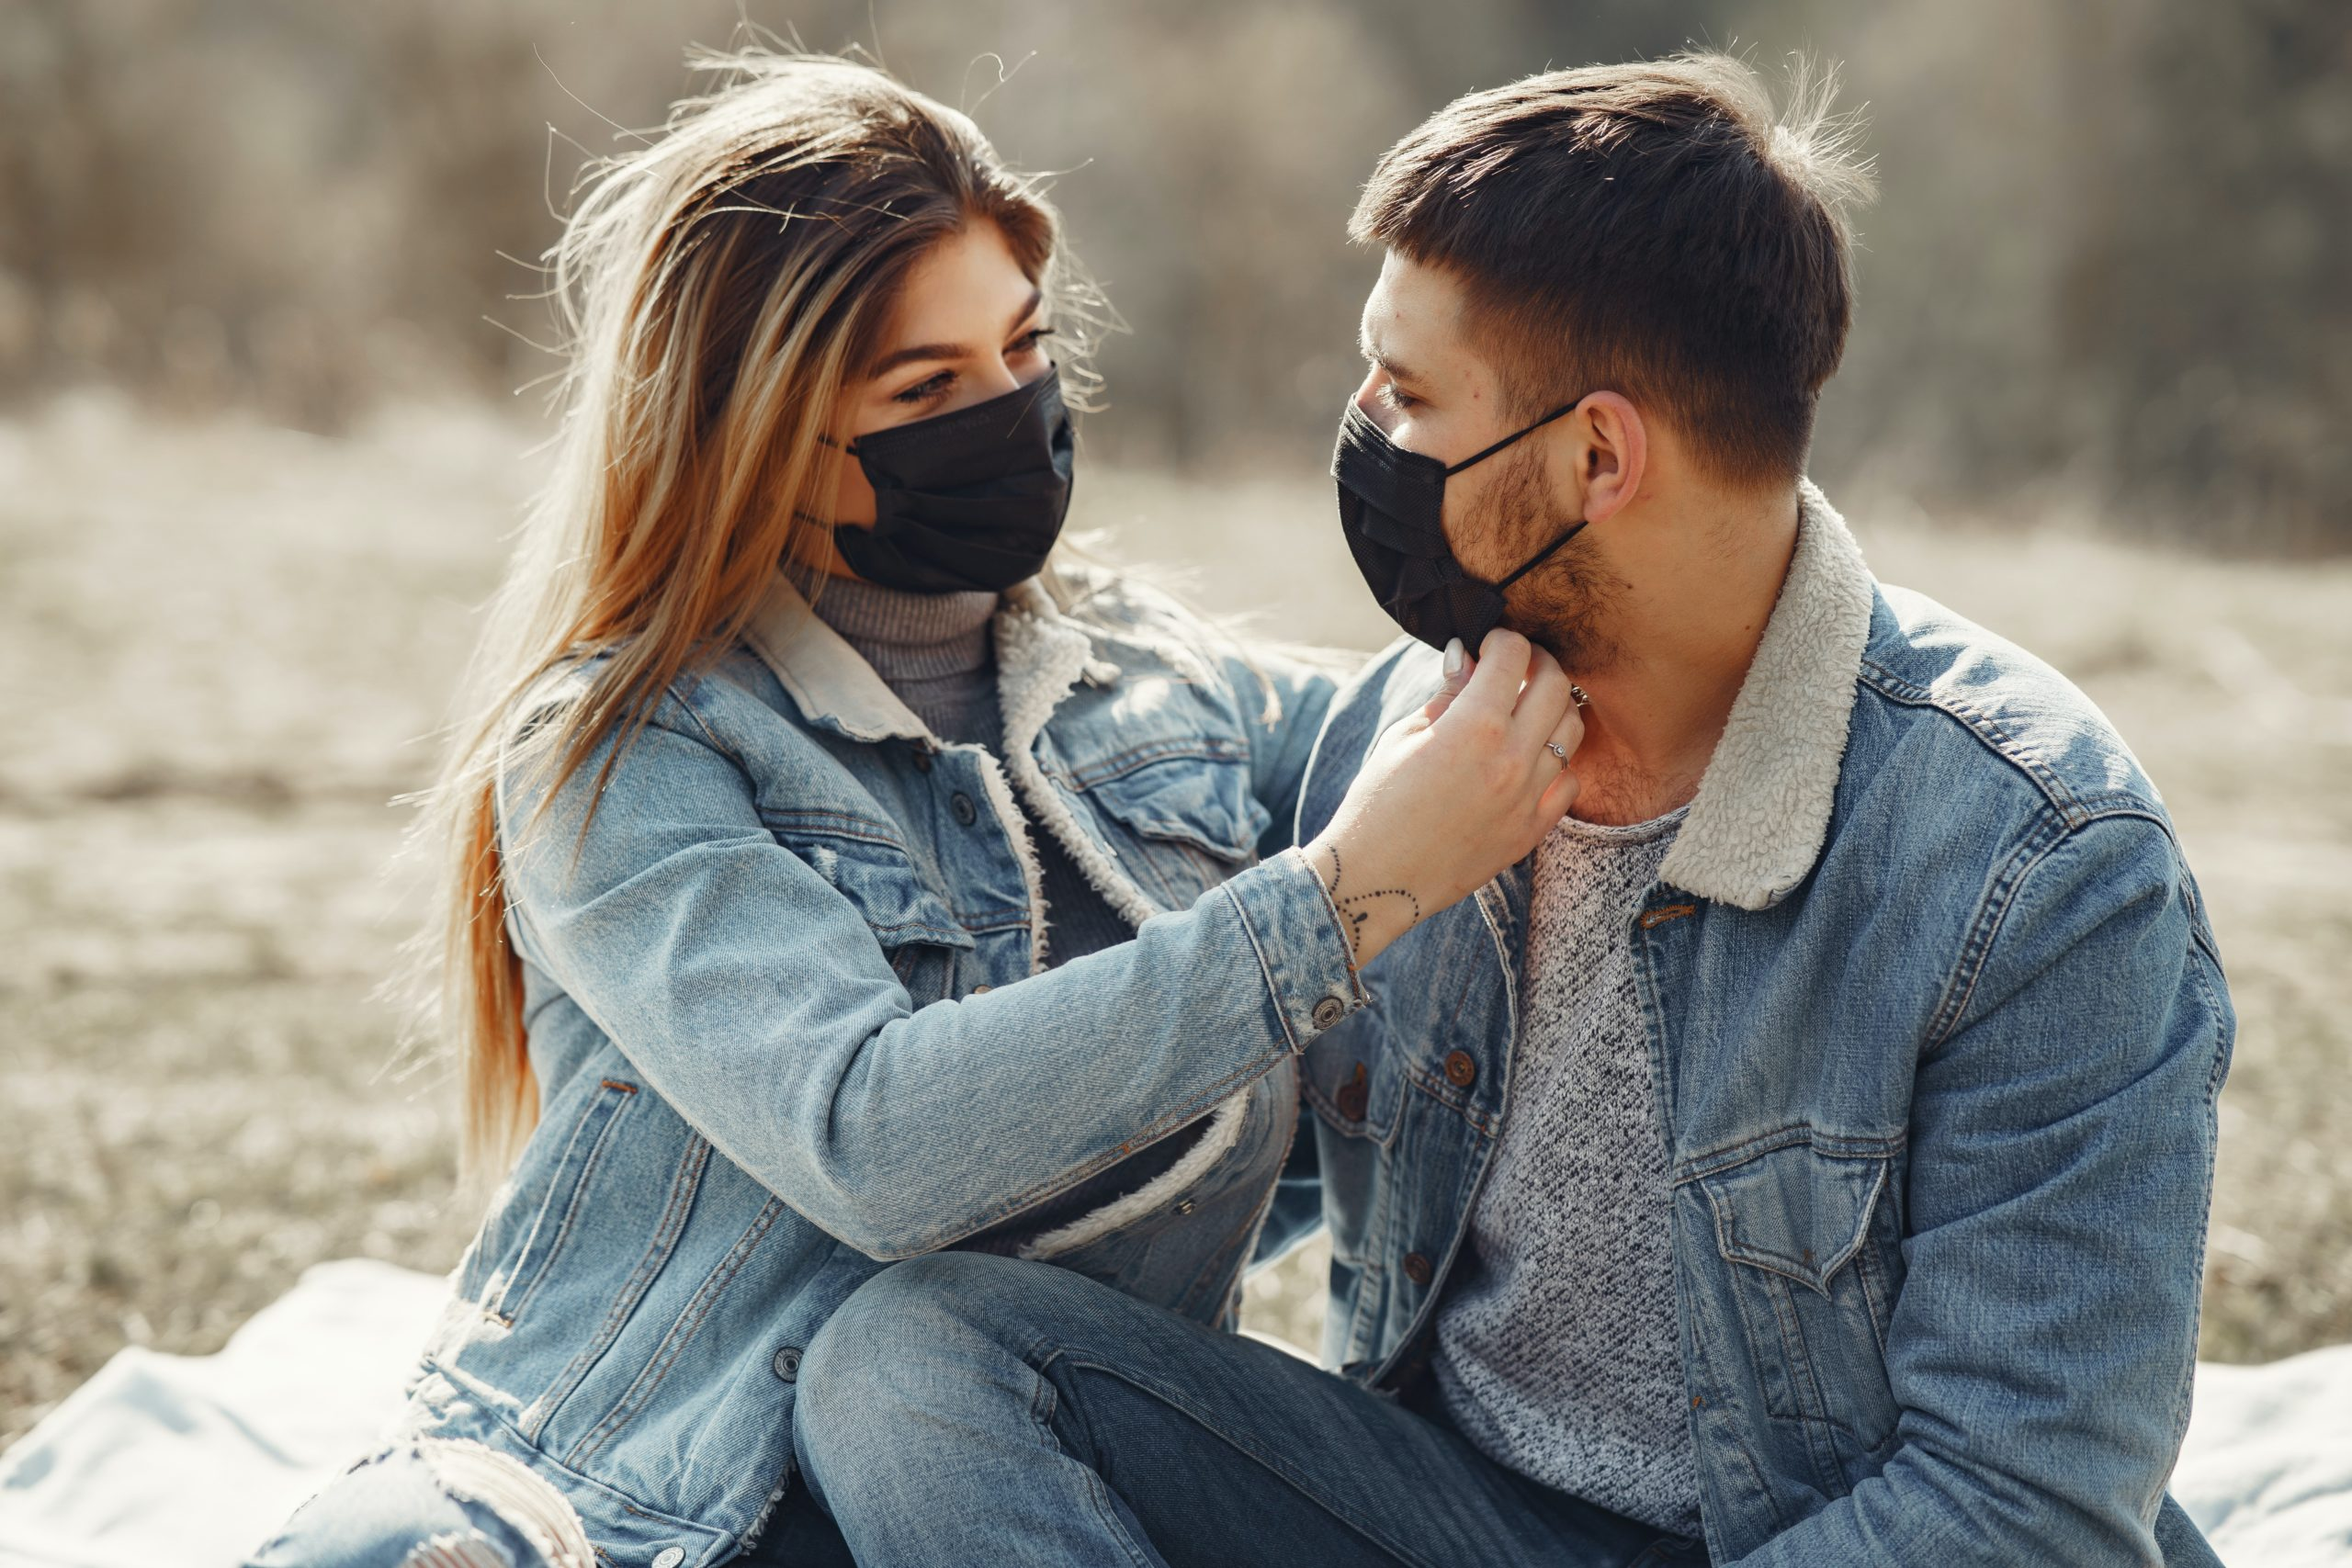 Coronavirus: couples should wear face masks during sex to prevent infection